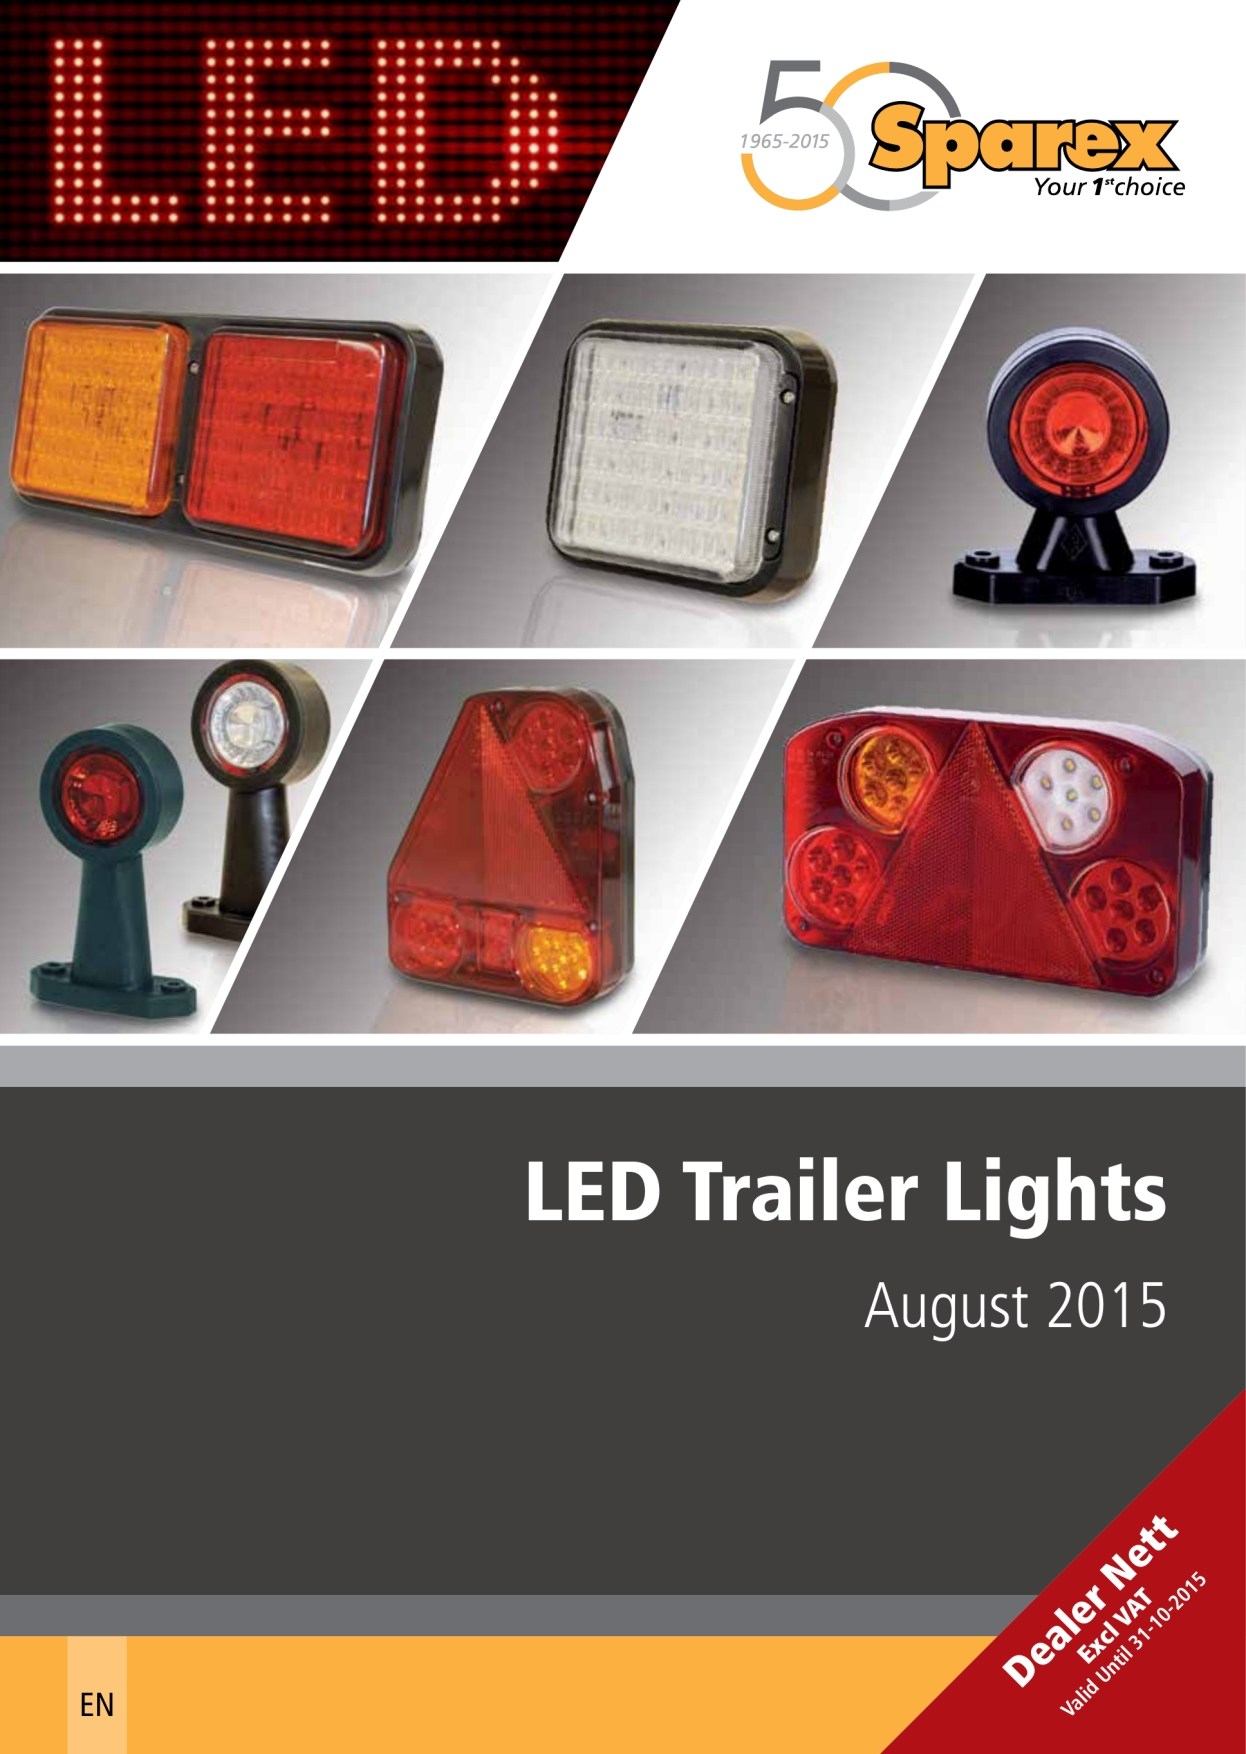 Sparex Catalogues Wiring Trailer Lights Uk S700669 Led